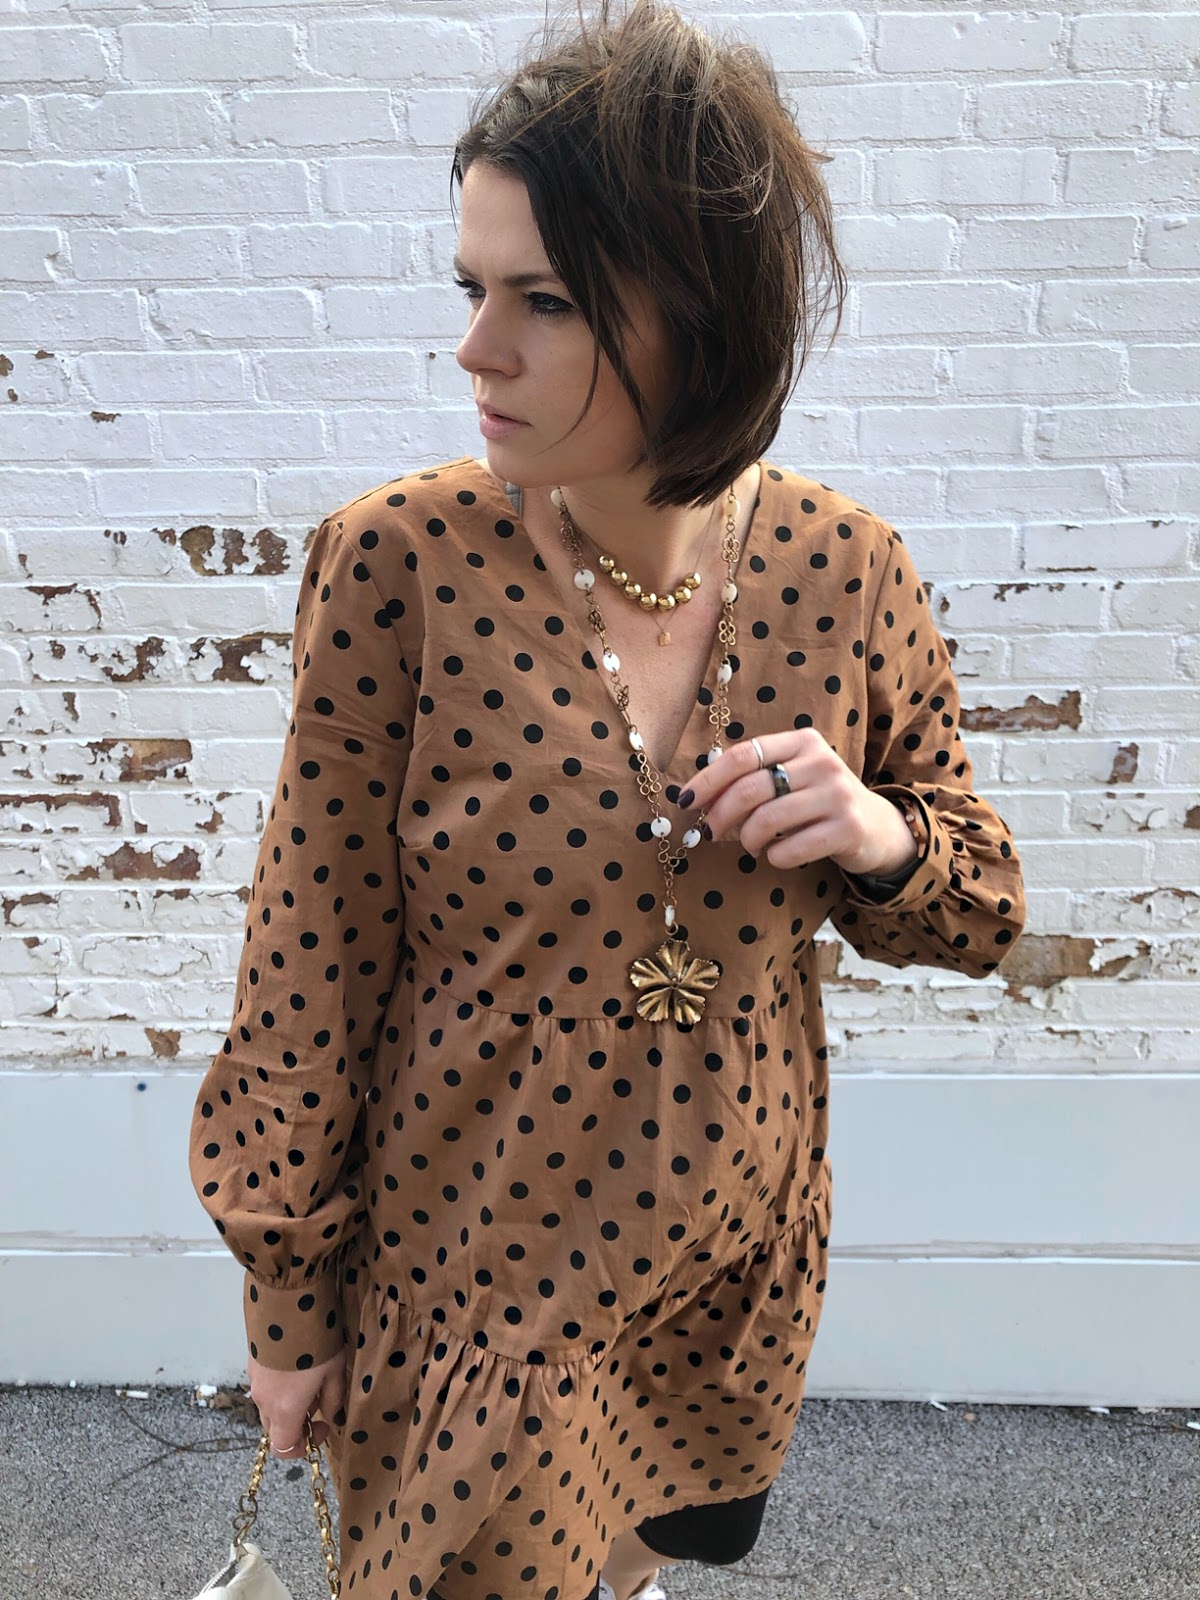 A very versatile camel color dress with black polka dots